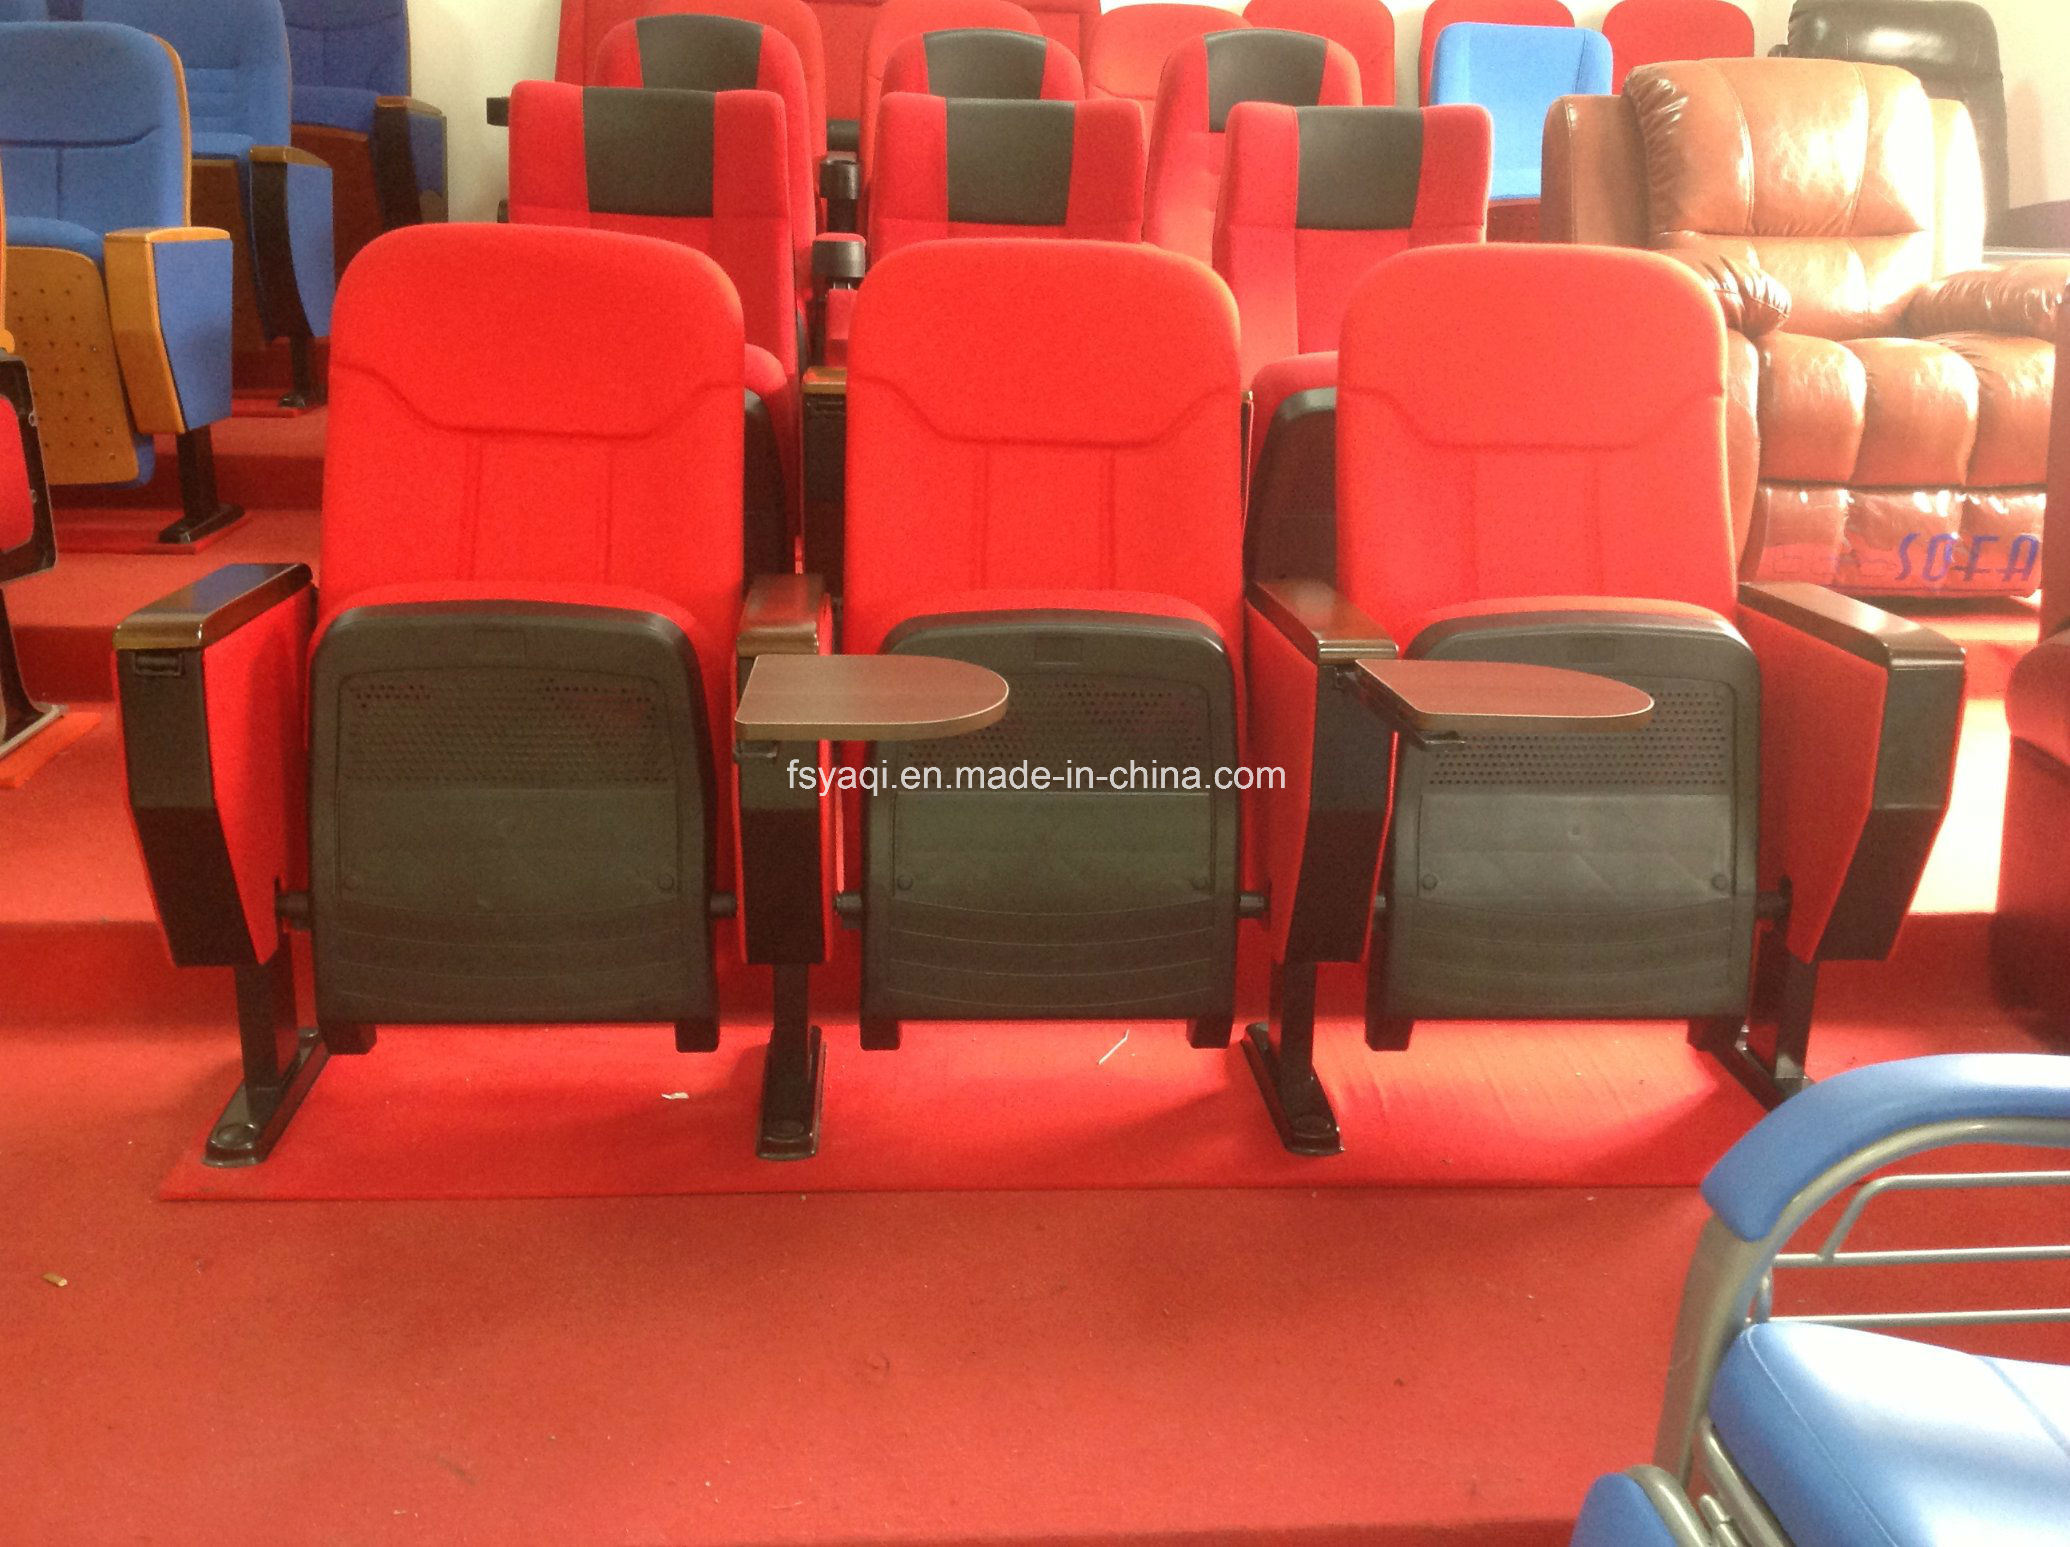 Hotsale with Competitive Pirce Church Chair Auditorium Seating (YA-04)